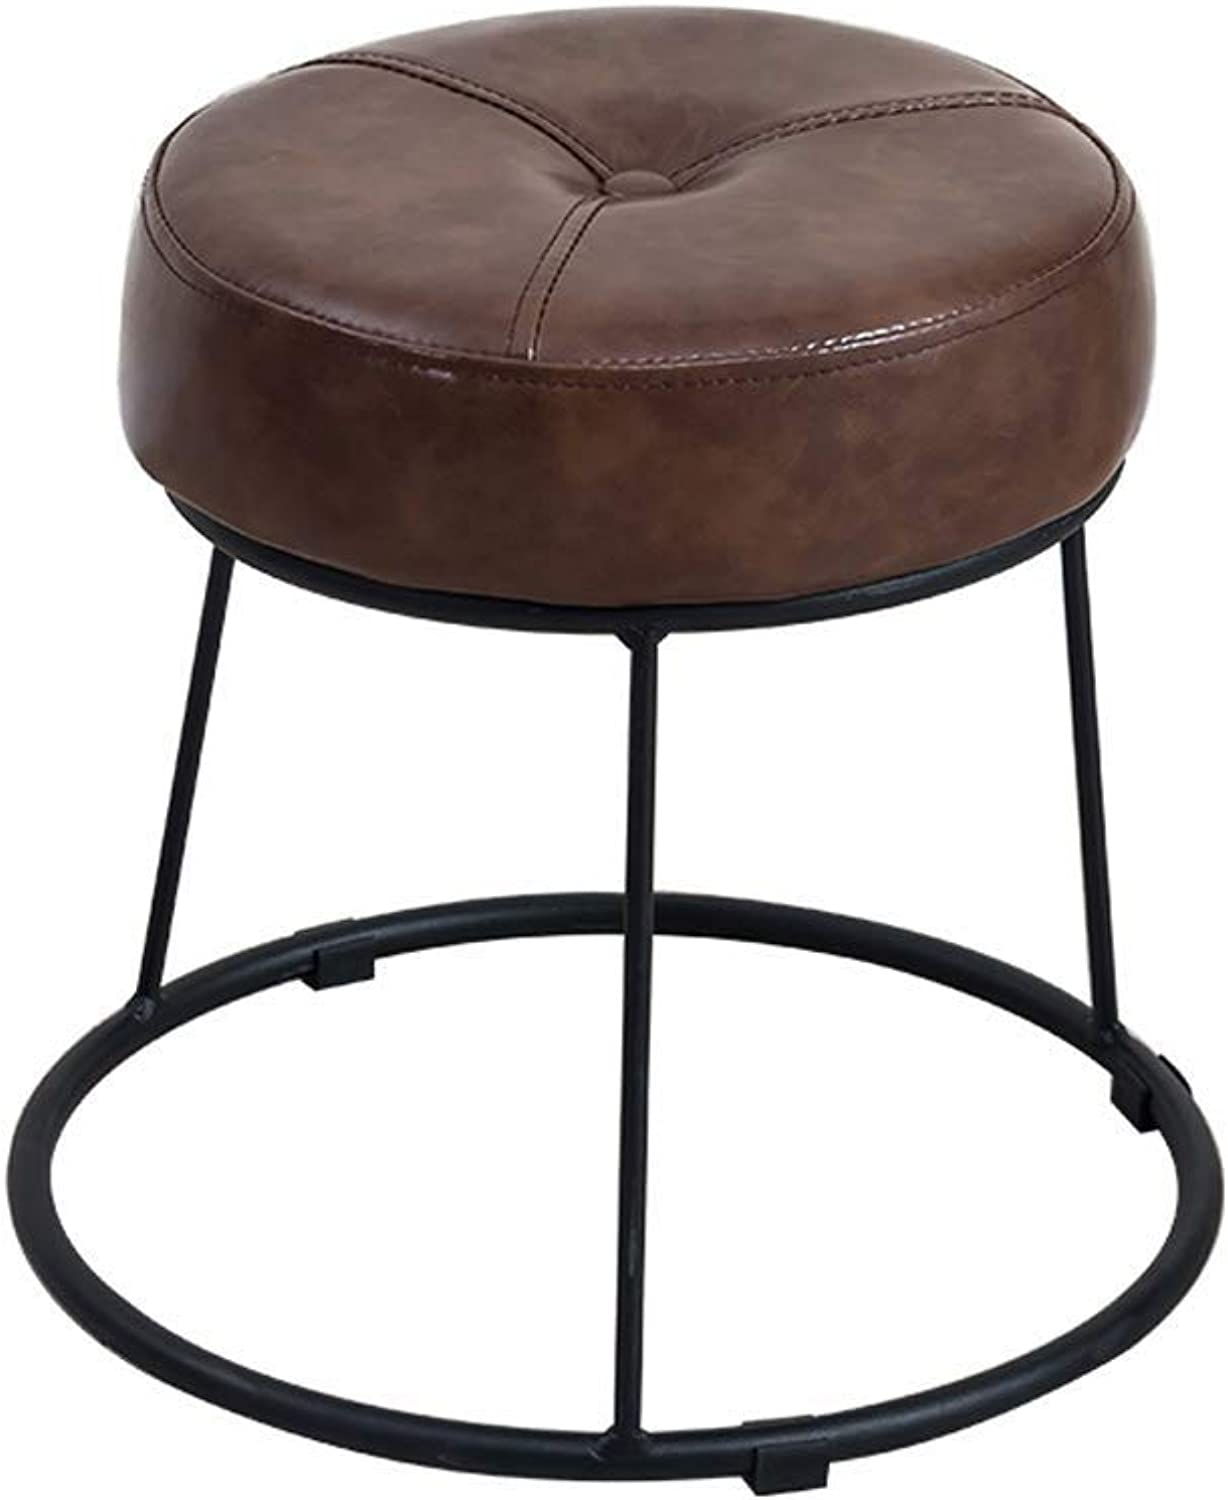 Round Stool, Sponge Cushion, Creative Seat Bench, Bedroom Dressing Table, Makeup Chair, Living Room, Brown (31.5cm × 36.5cm) (Size   31.5cm×36.5cm)